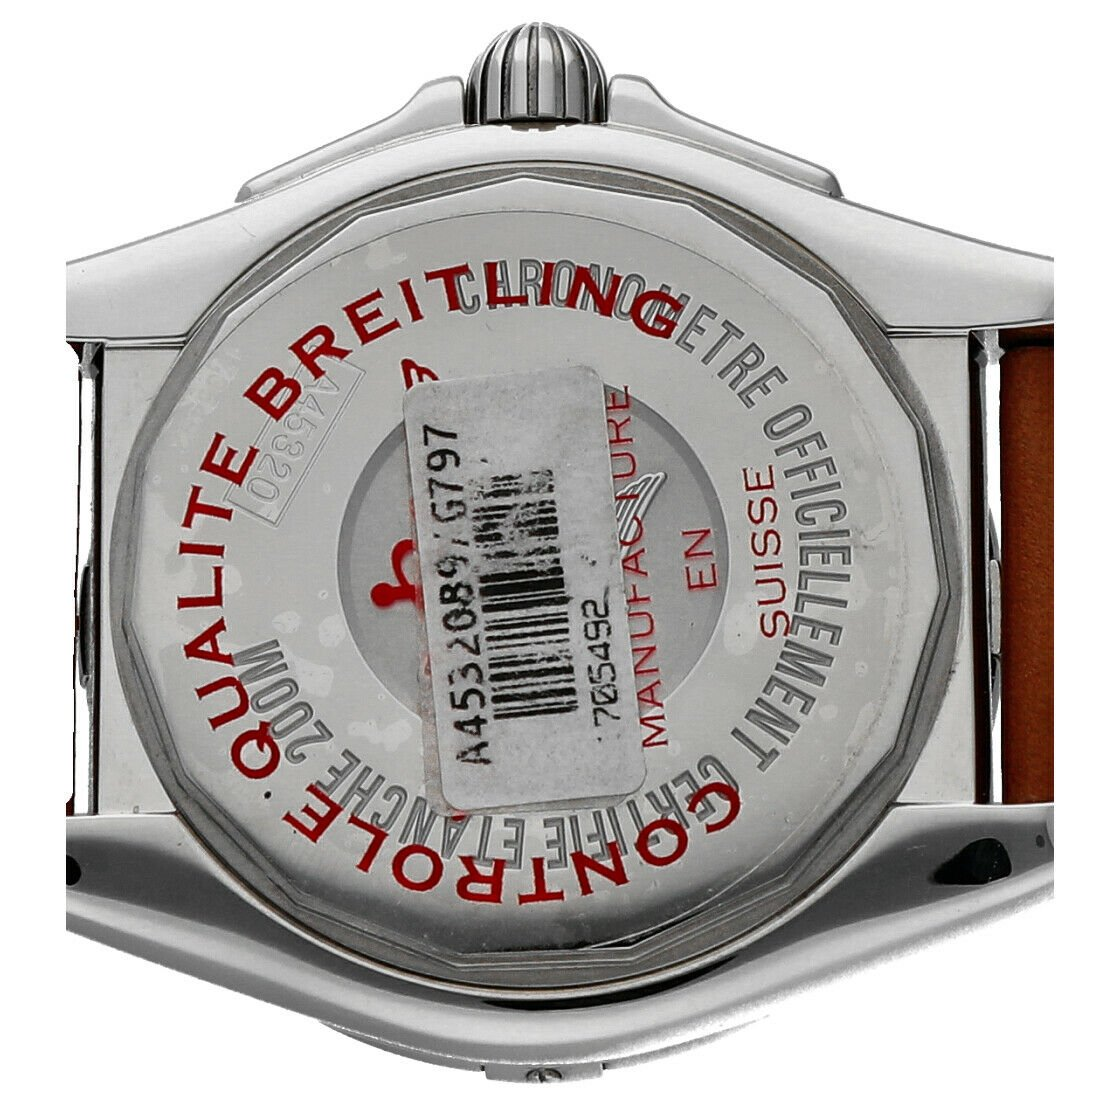 Breitling A45320 Galactic 44 Silver Dial Stainless Steel Automatic Mens Watch 114160975370 5